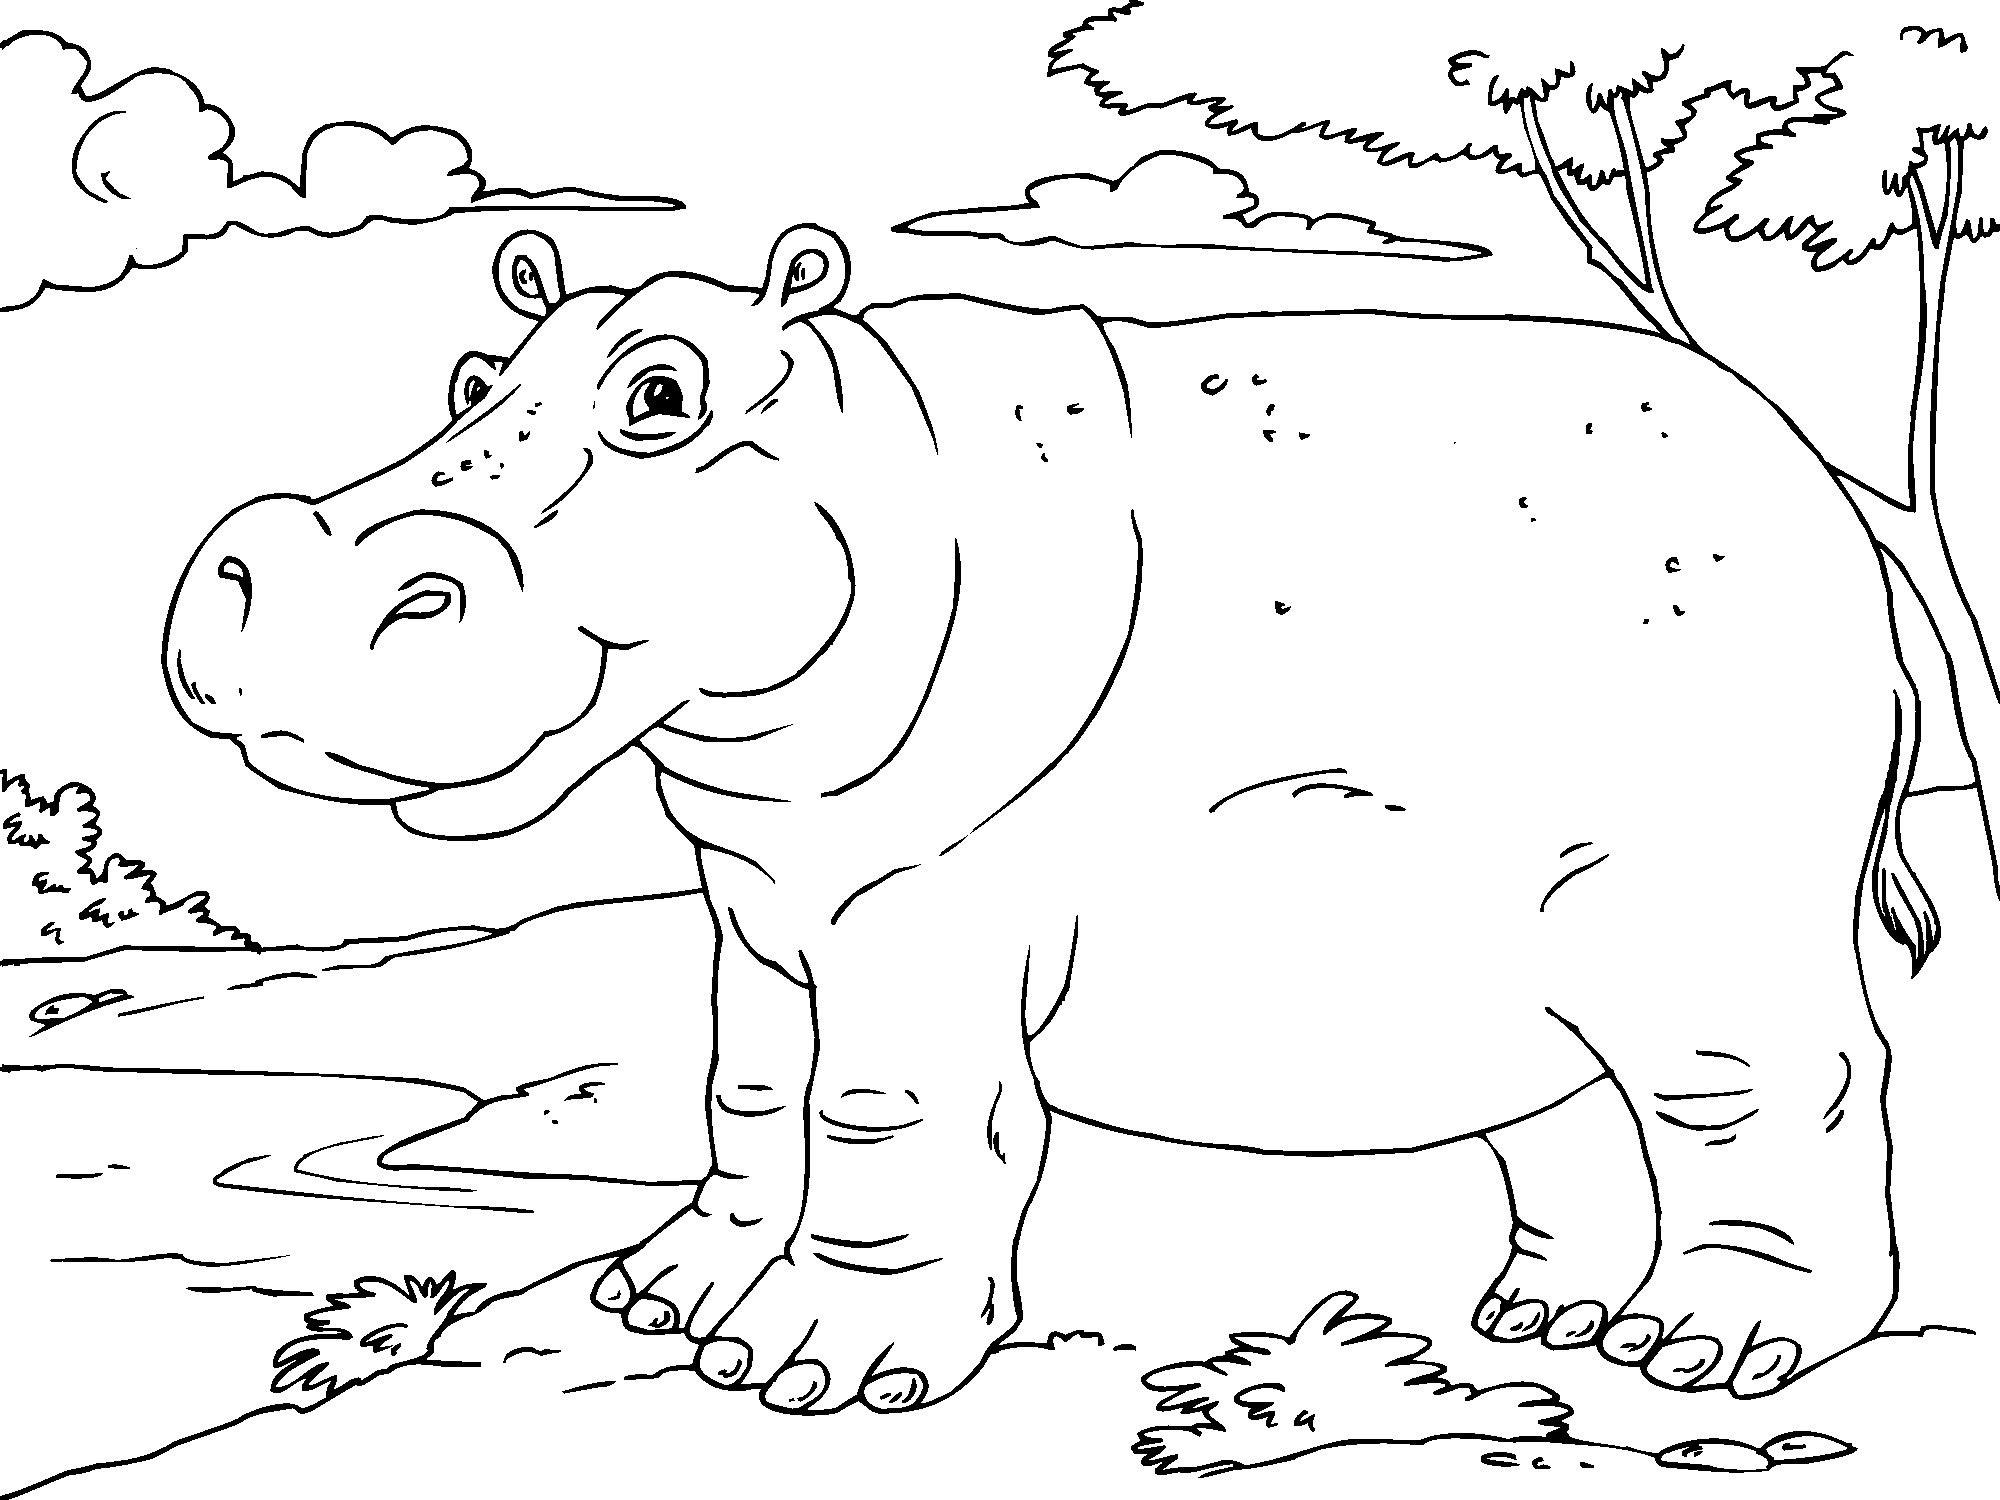 Texas Coloring Pages to Print - Perspective Texas Tech Coloring Pages Page to Print